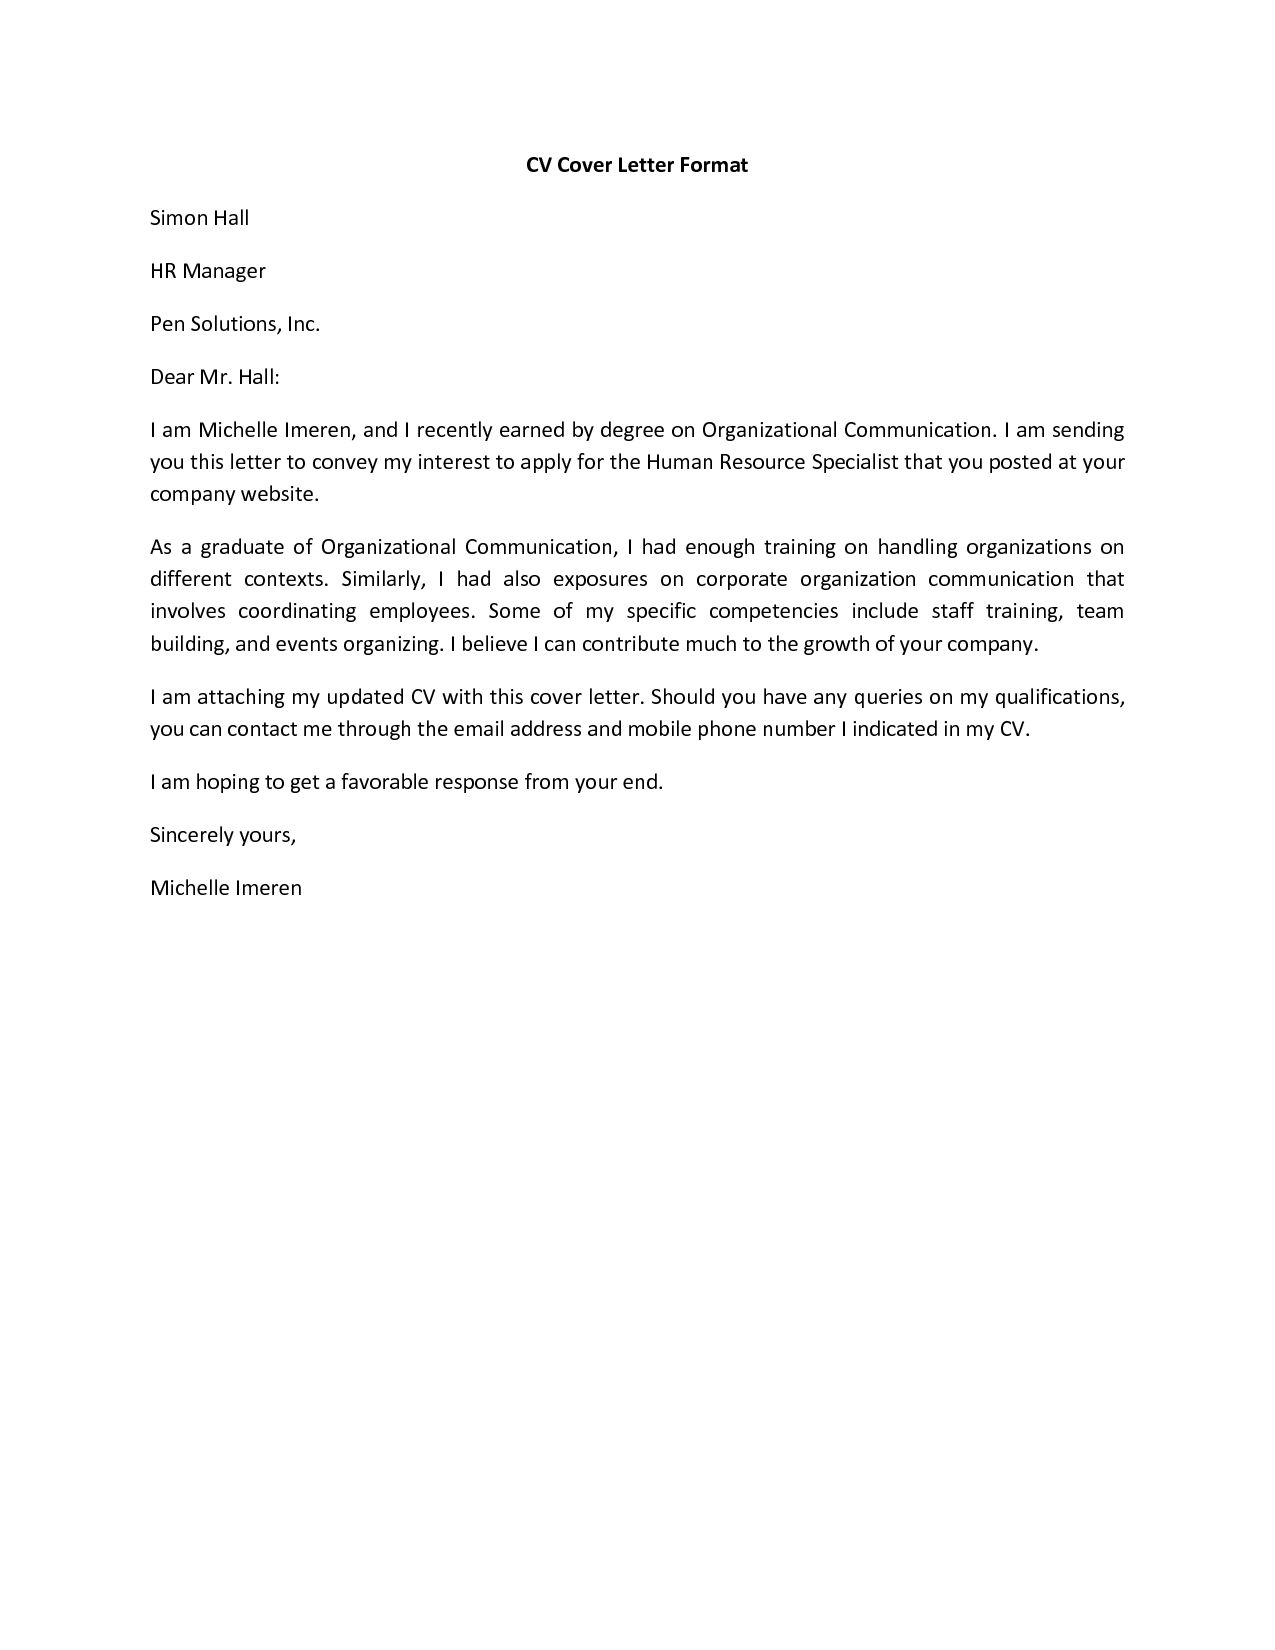 How To Write A Great Cover Letter Basic Cover Letter For A Resume  News To Go 2  Pinterest